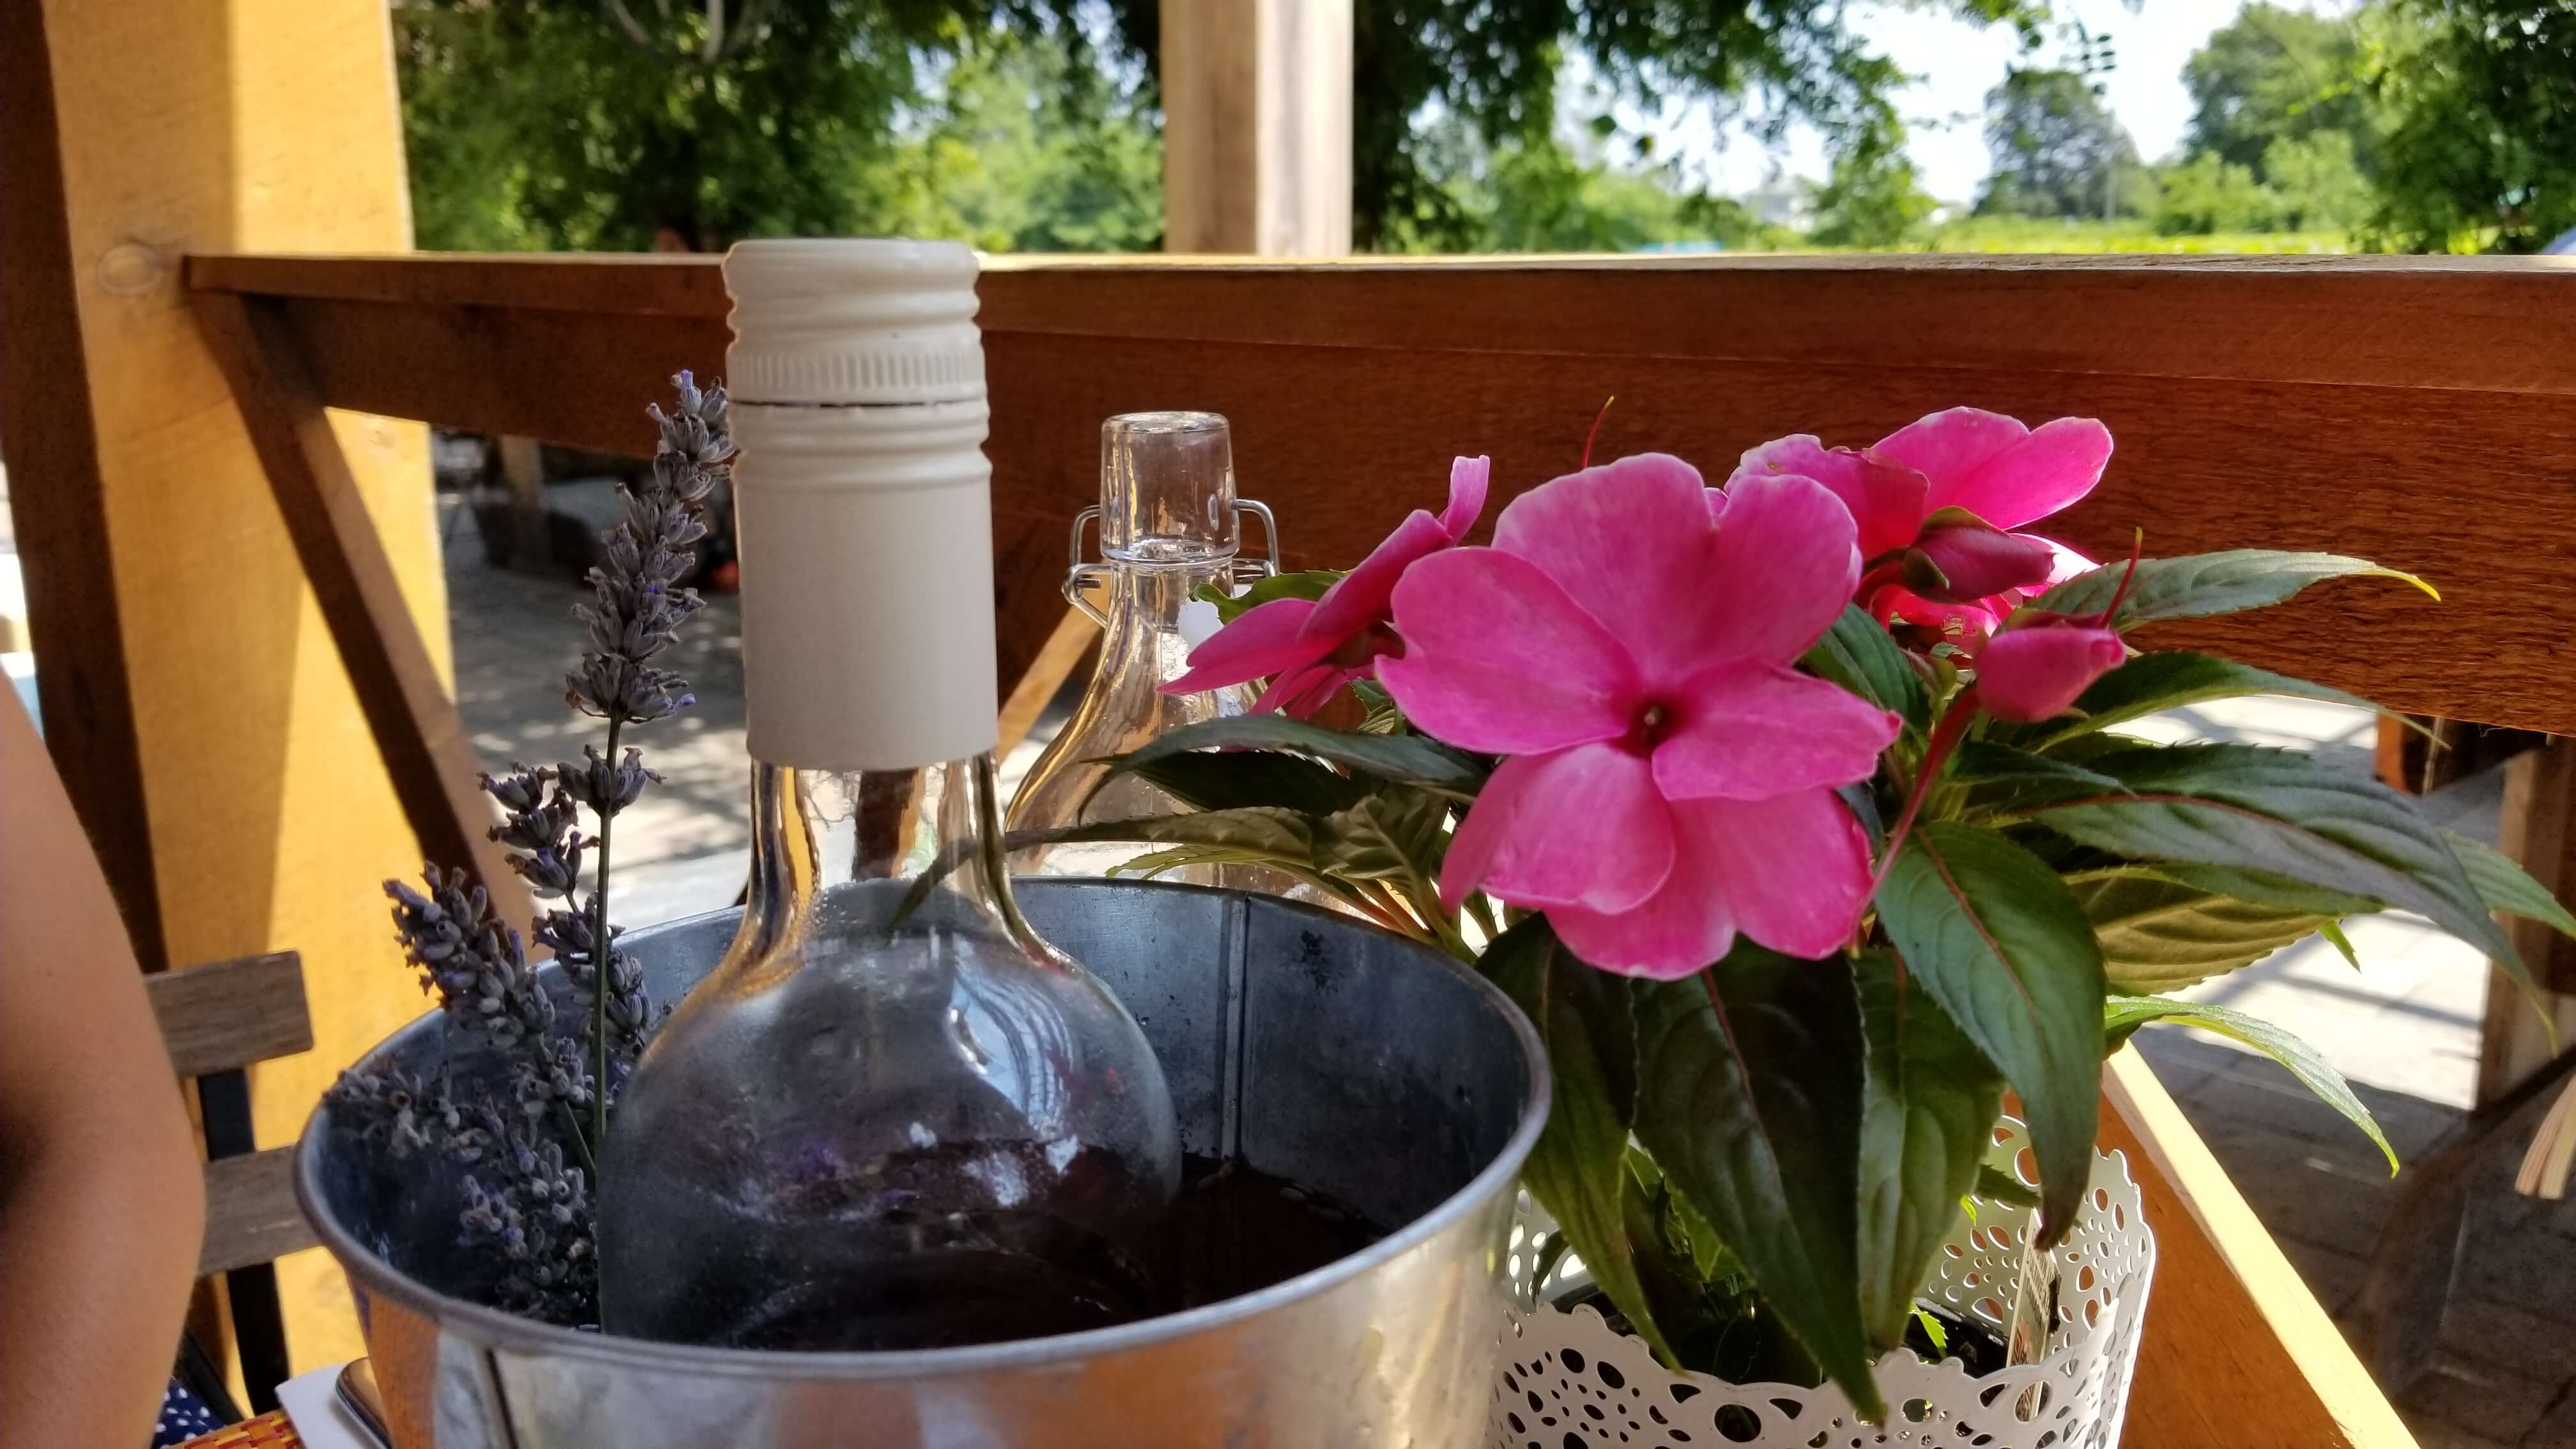 Wine bucket with flowers on table